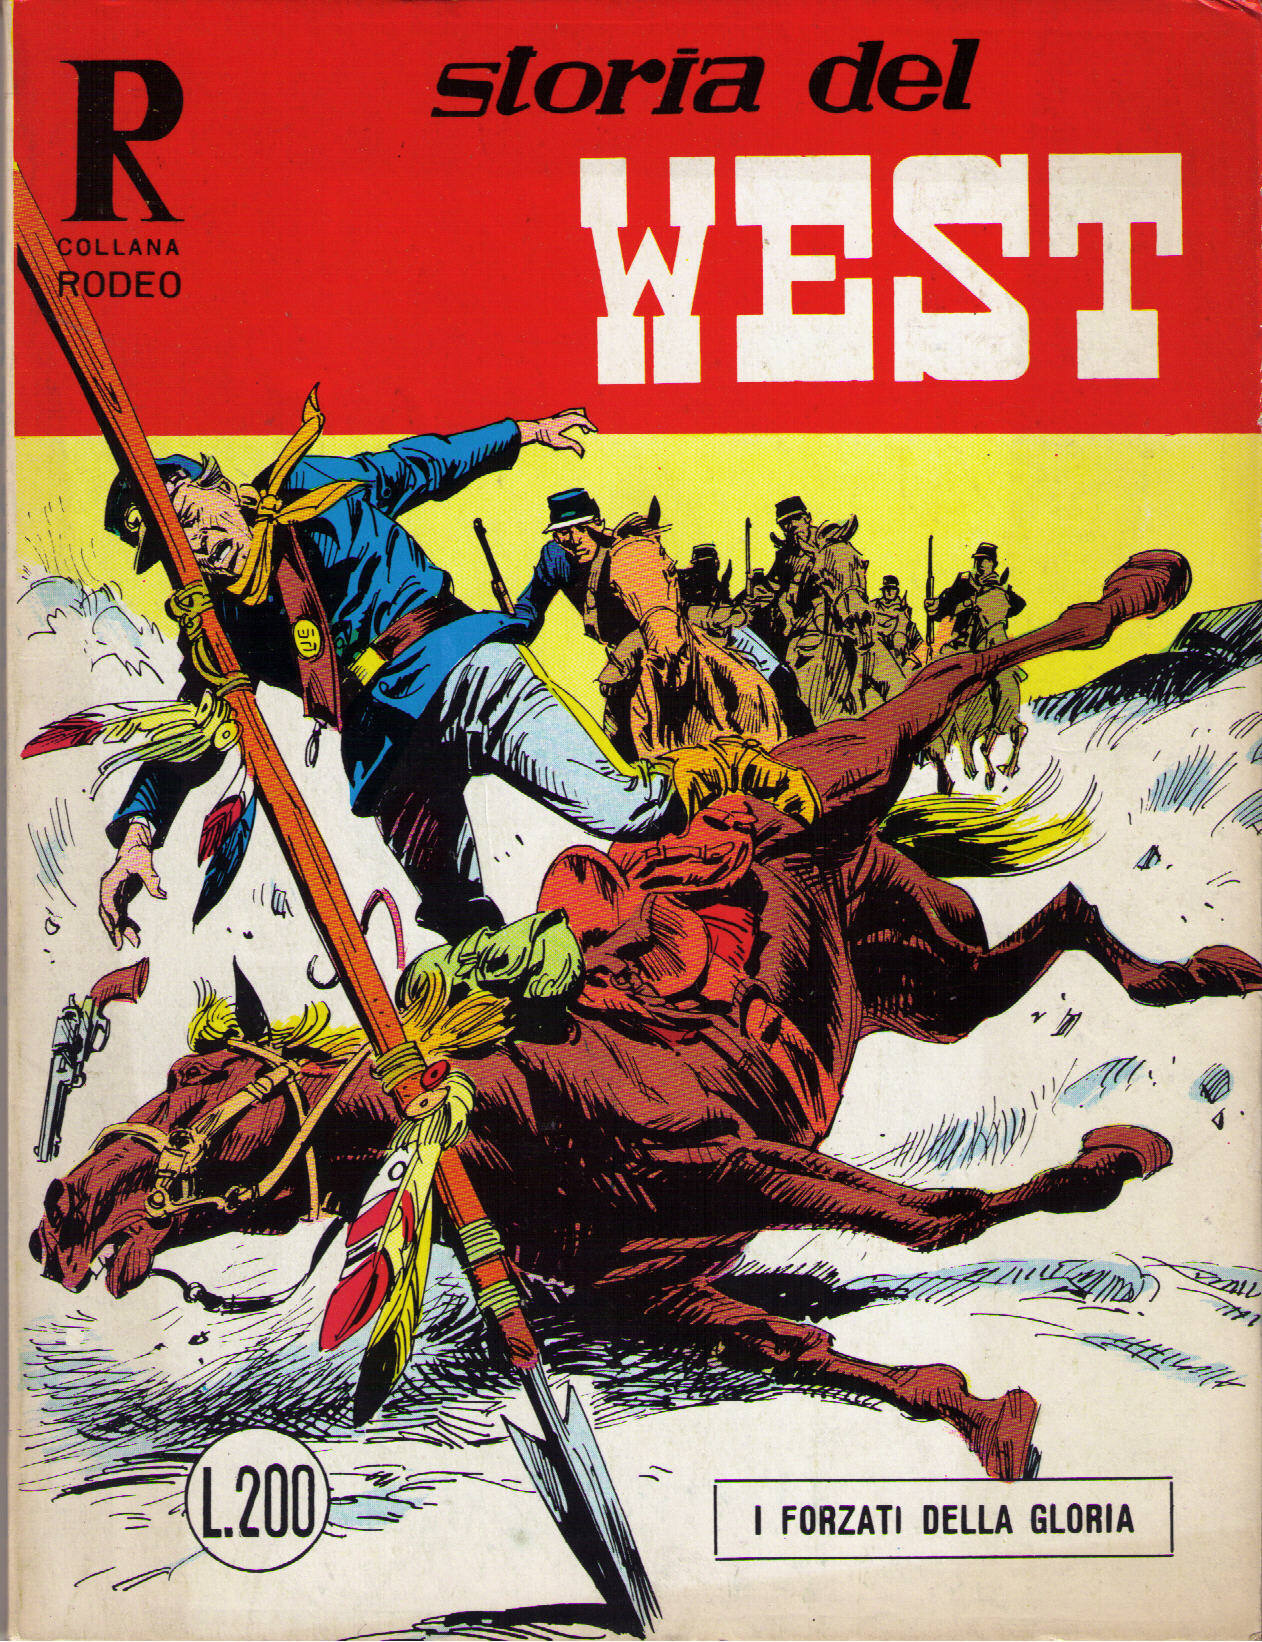 Storia del west n.24 (Collana Rodeo n.51)